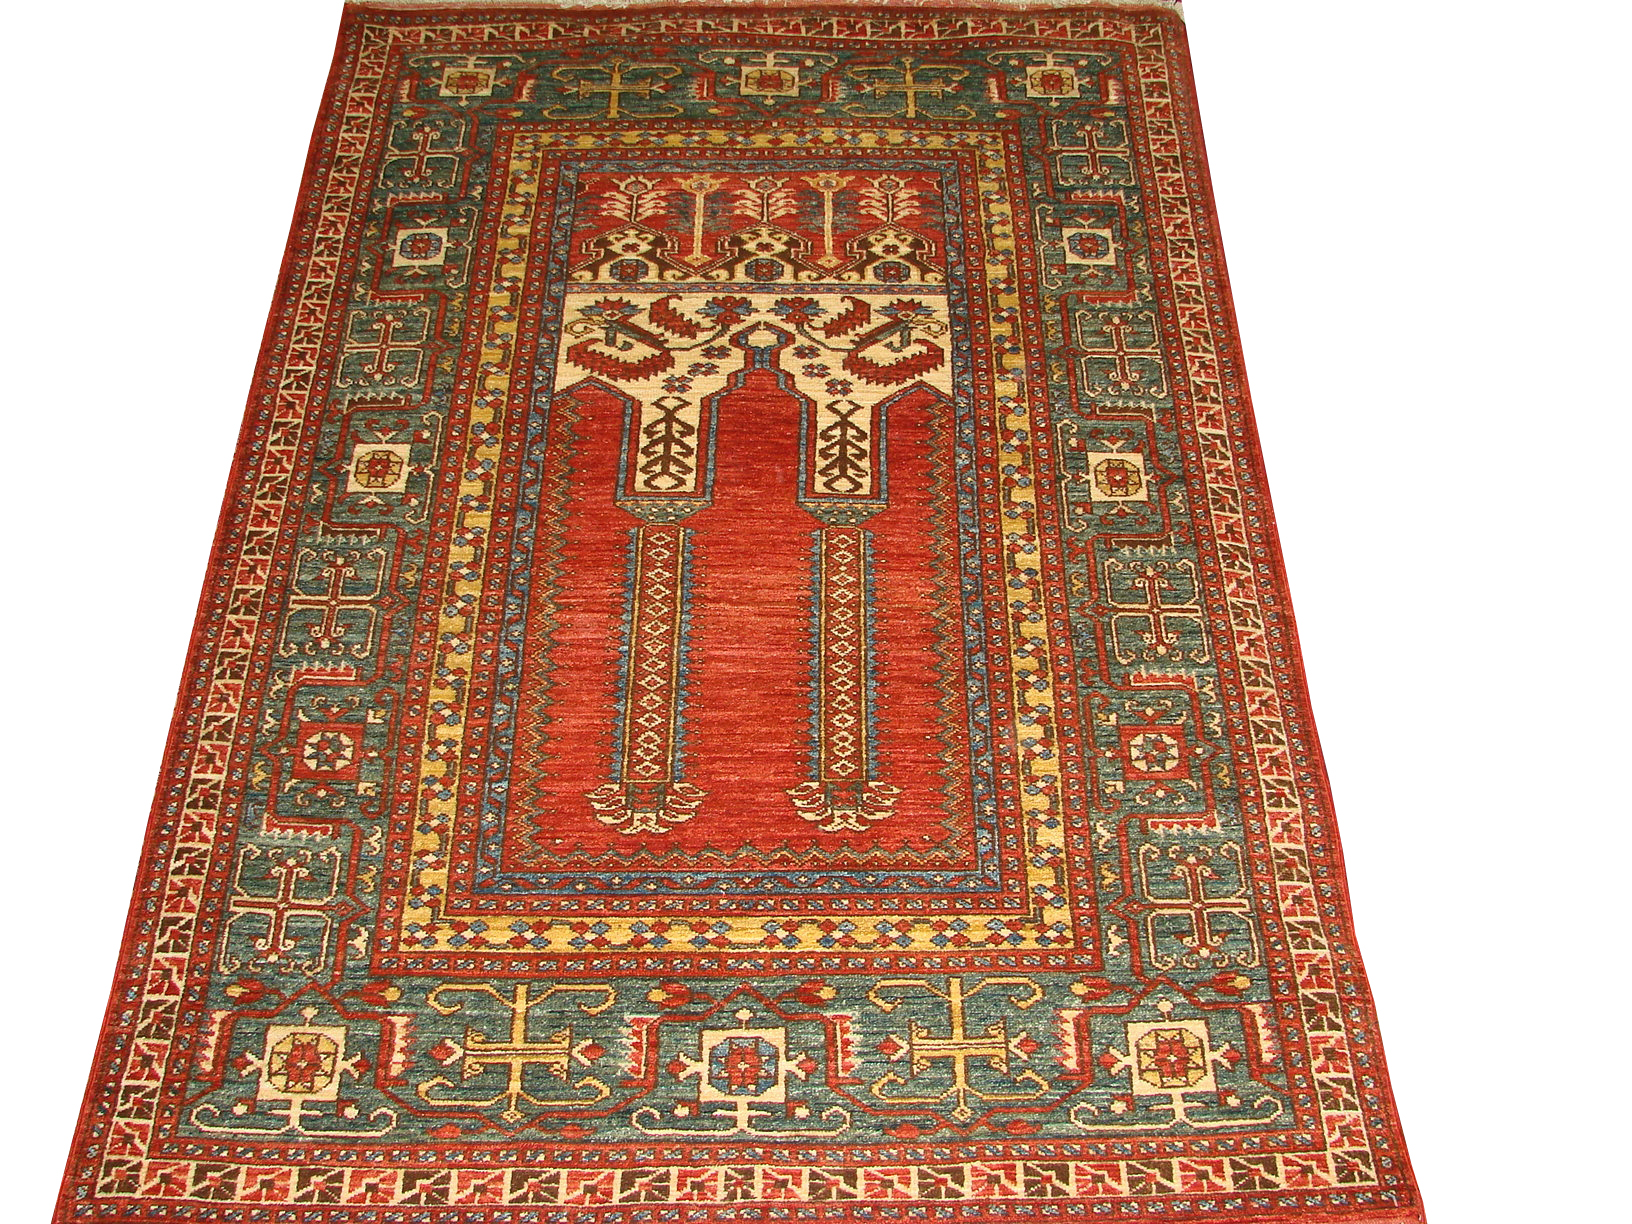 4x6 Antique Revival Hand Knotted Wool Area Rug - MR11116